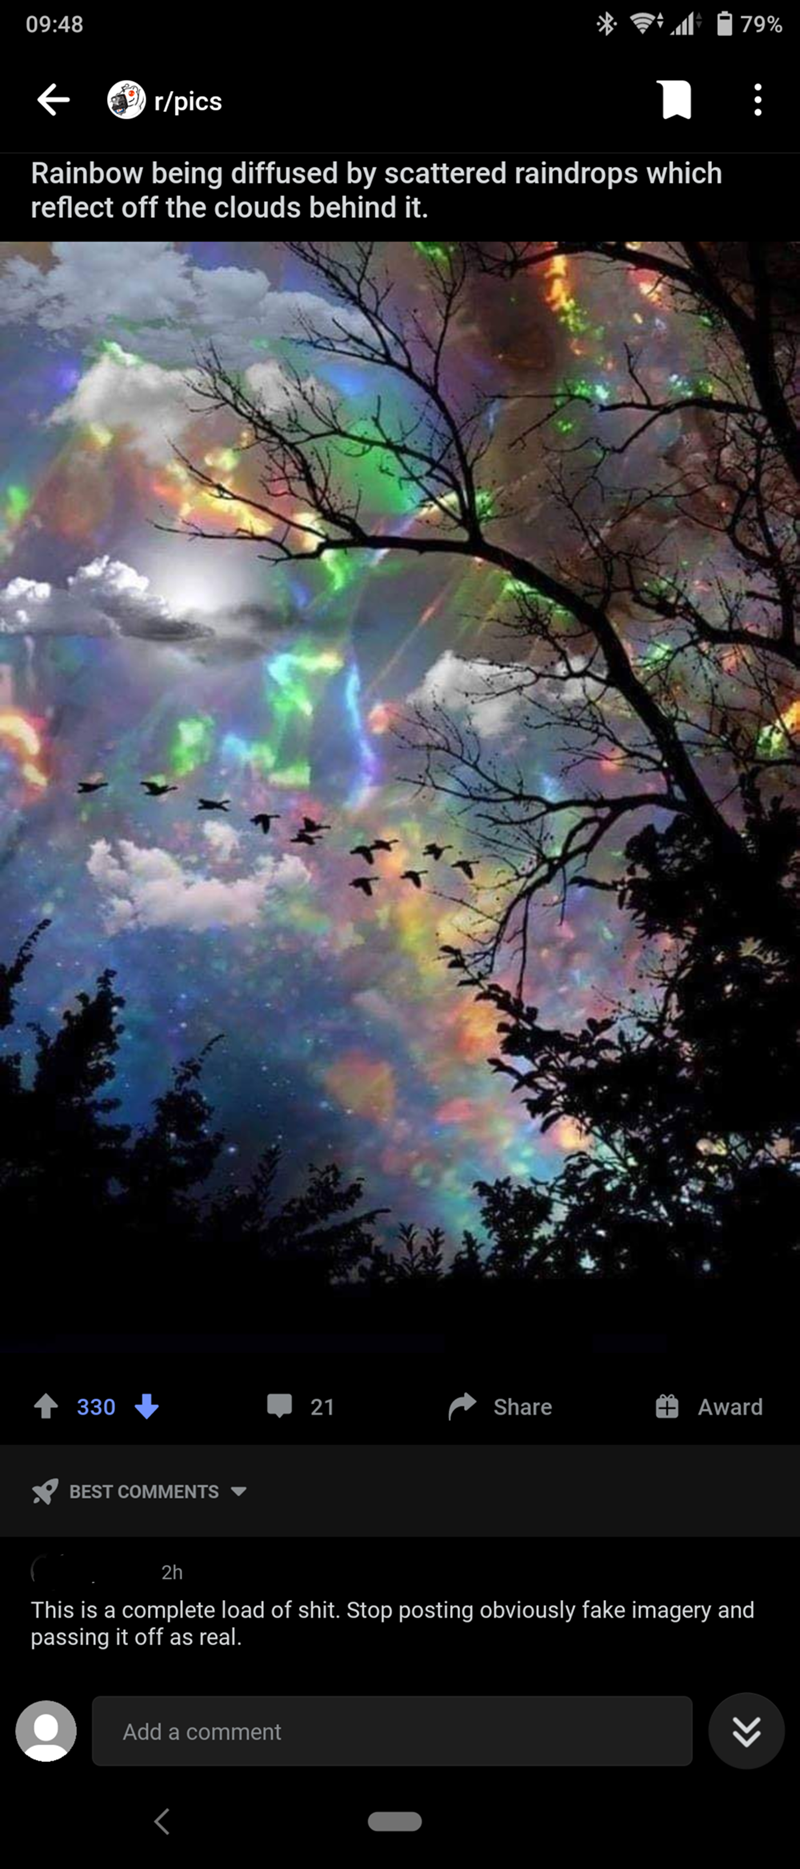 Atmosphere - 09:48 79% r/pics Rainbow being diffused by scattered raindrops which reflect off the clouds behind it. 330 21 Share Award Y BEST COMMENTS 2h This is a complete load of shit. Stop posting obviously fake imagery and passing it off as real. Add a comment >>